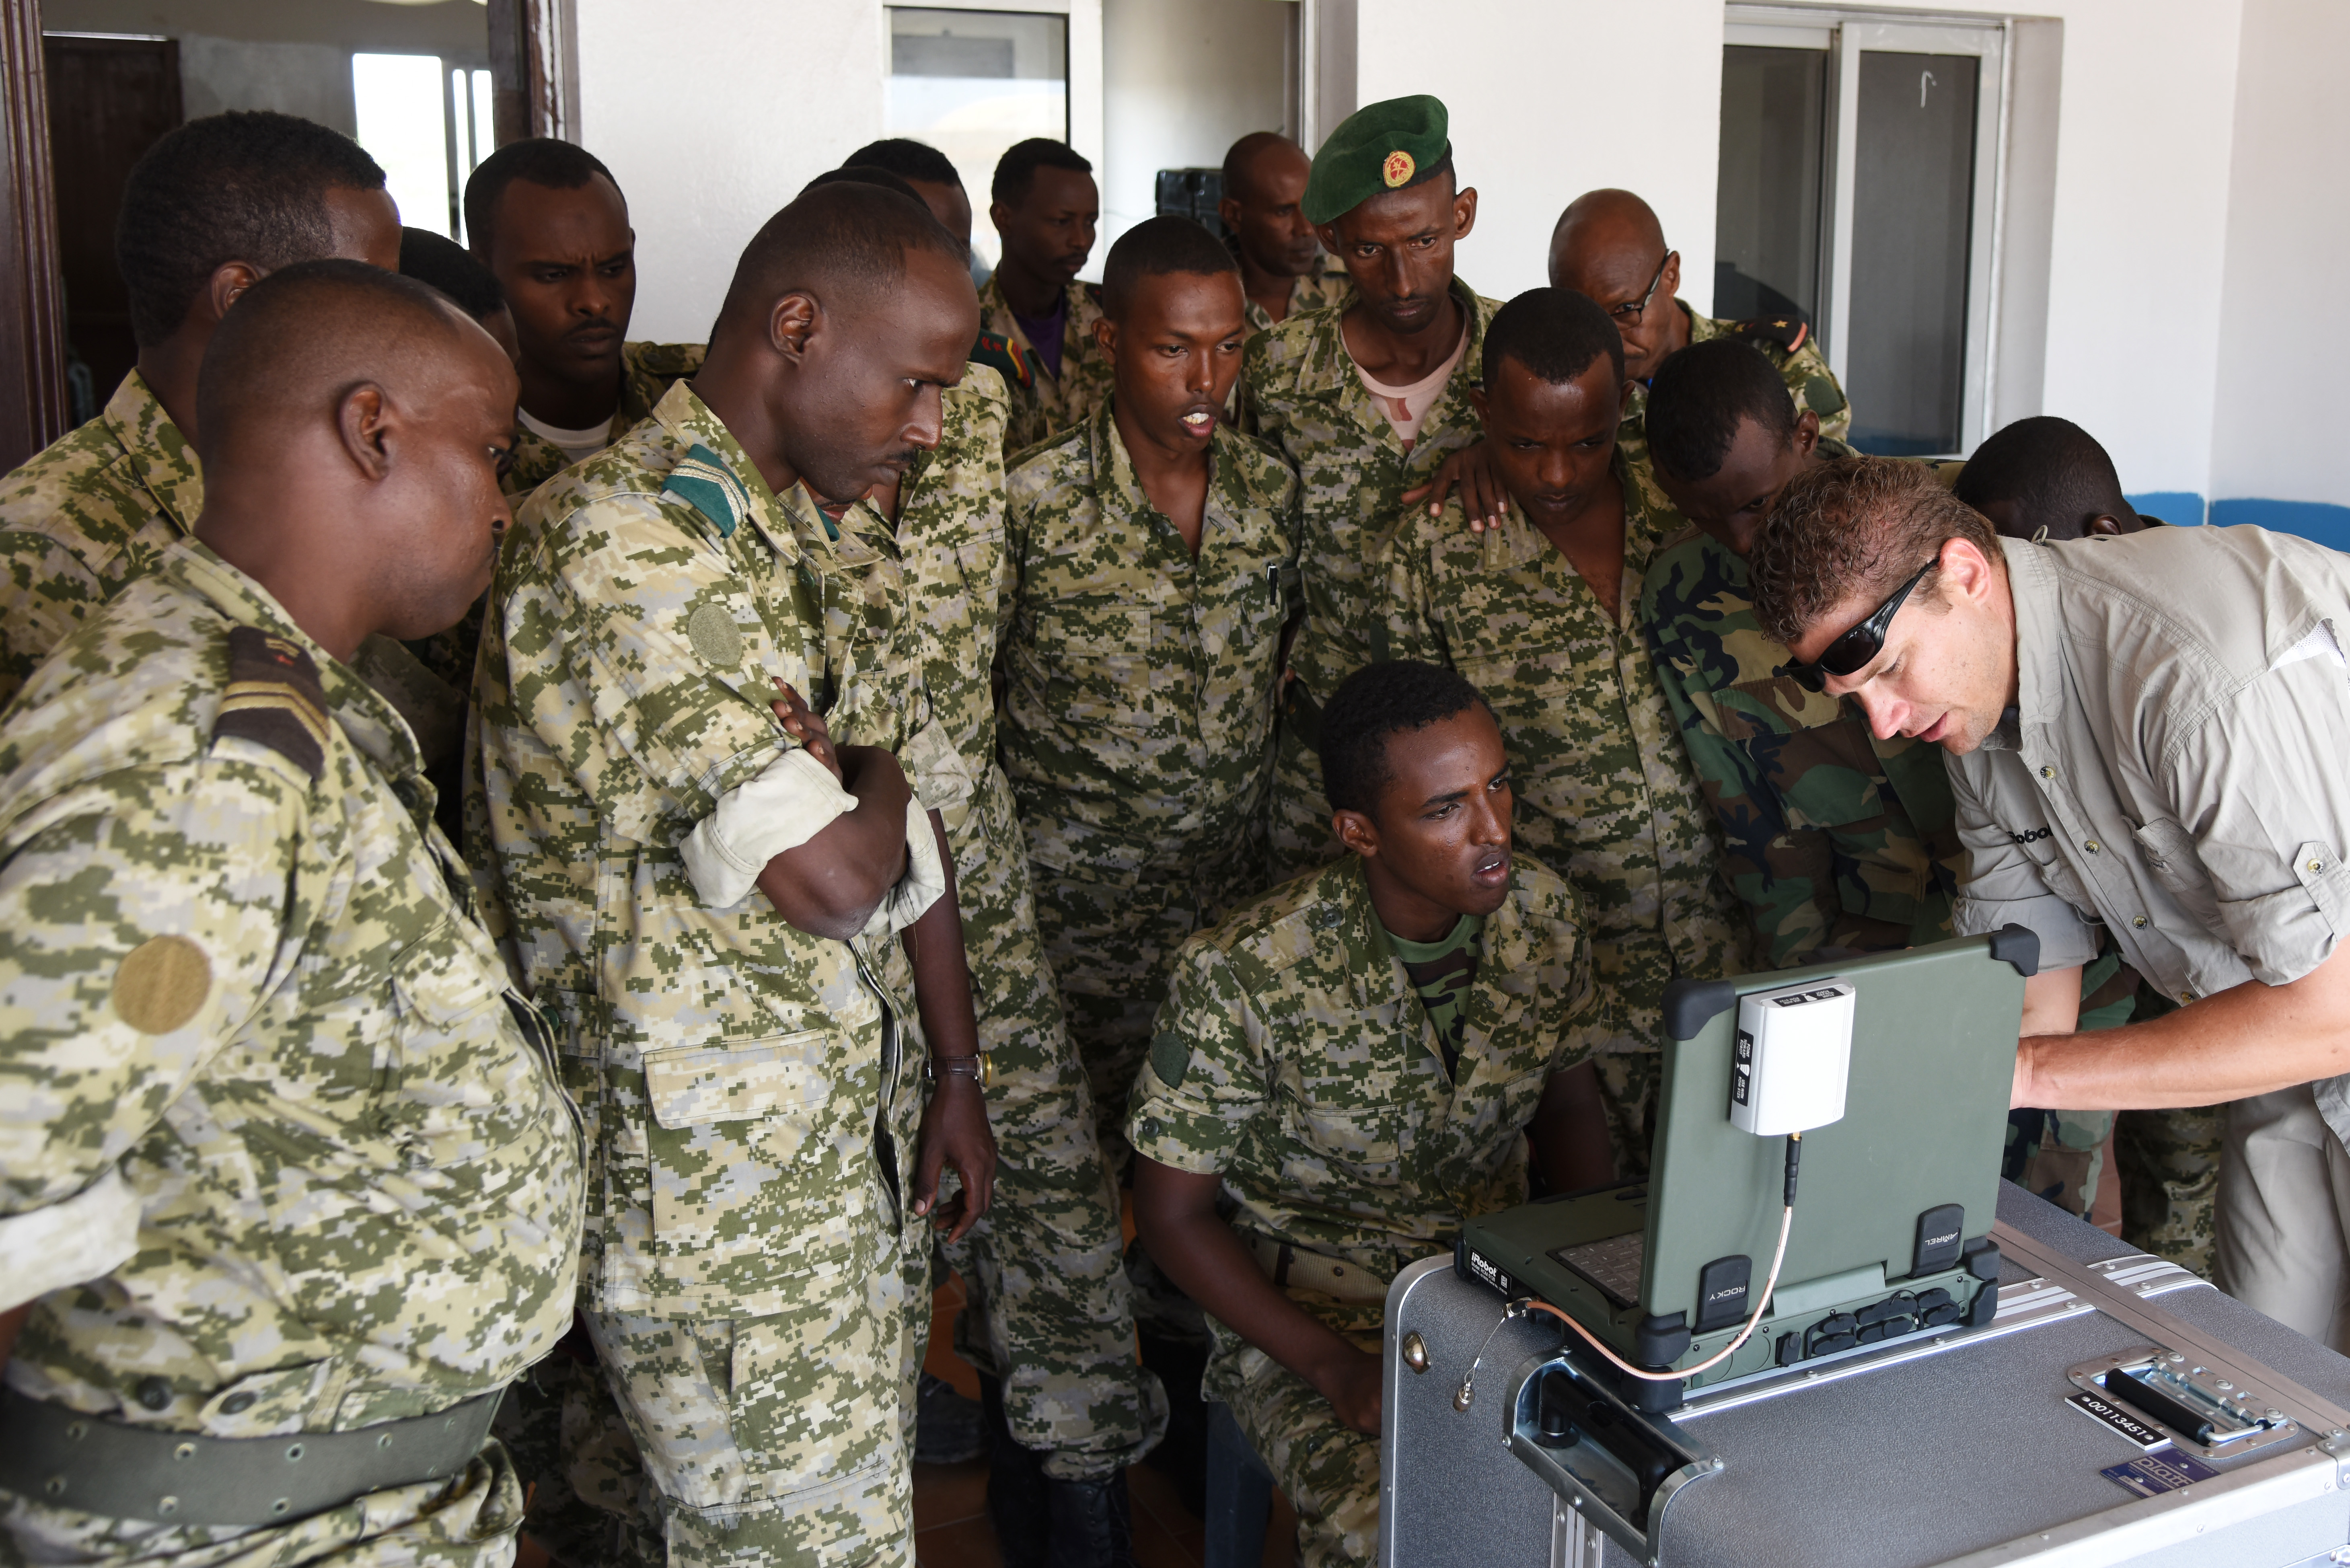 Joseph Brunette, iRobot instructor, shows Djibouti Armed Forces (FAD) service members how to use a computer to monitor what the 510 Packbot is searching. The robot searches for, and dispose of, explosive weapons. (U.S. Air Force photo by Staff Sgt. Maria Bowman)